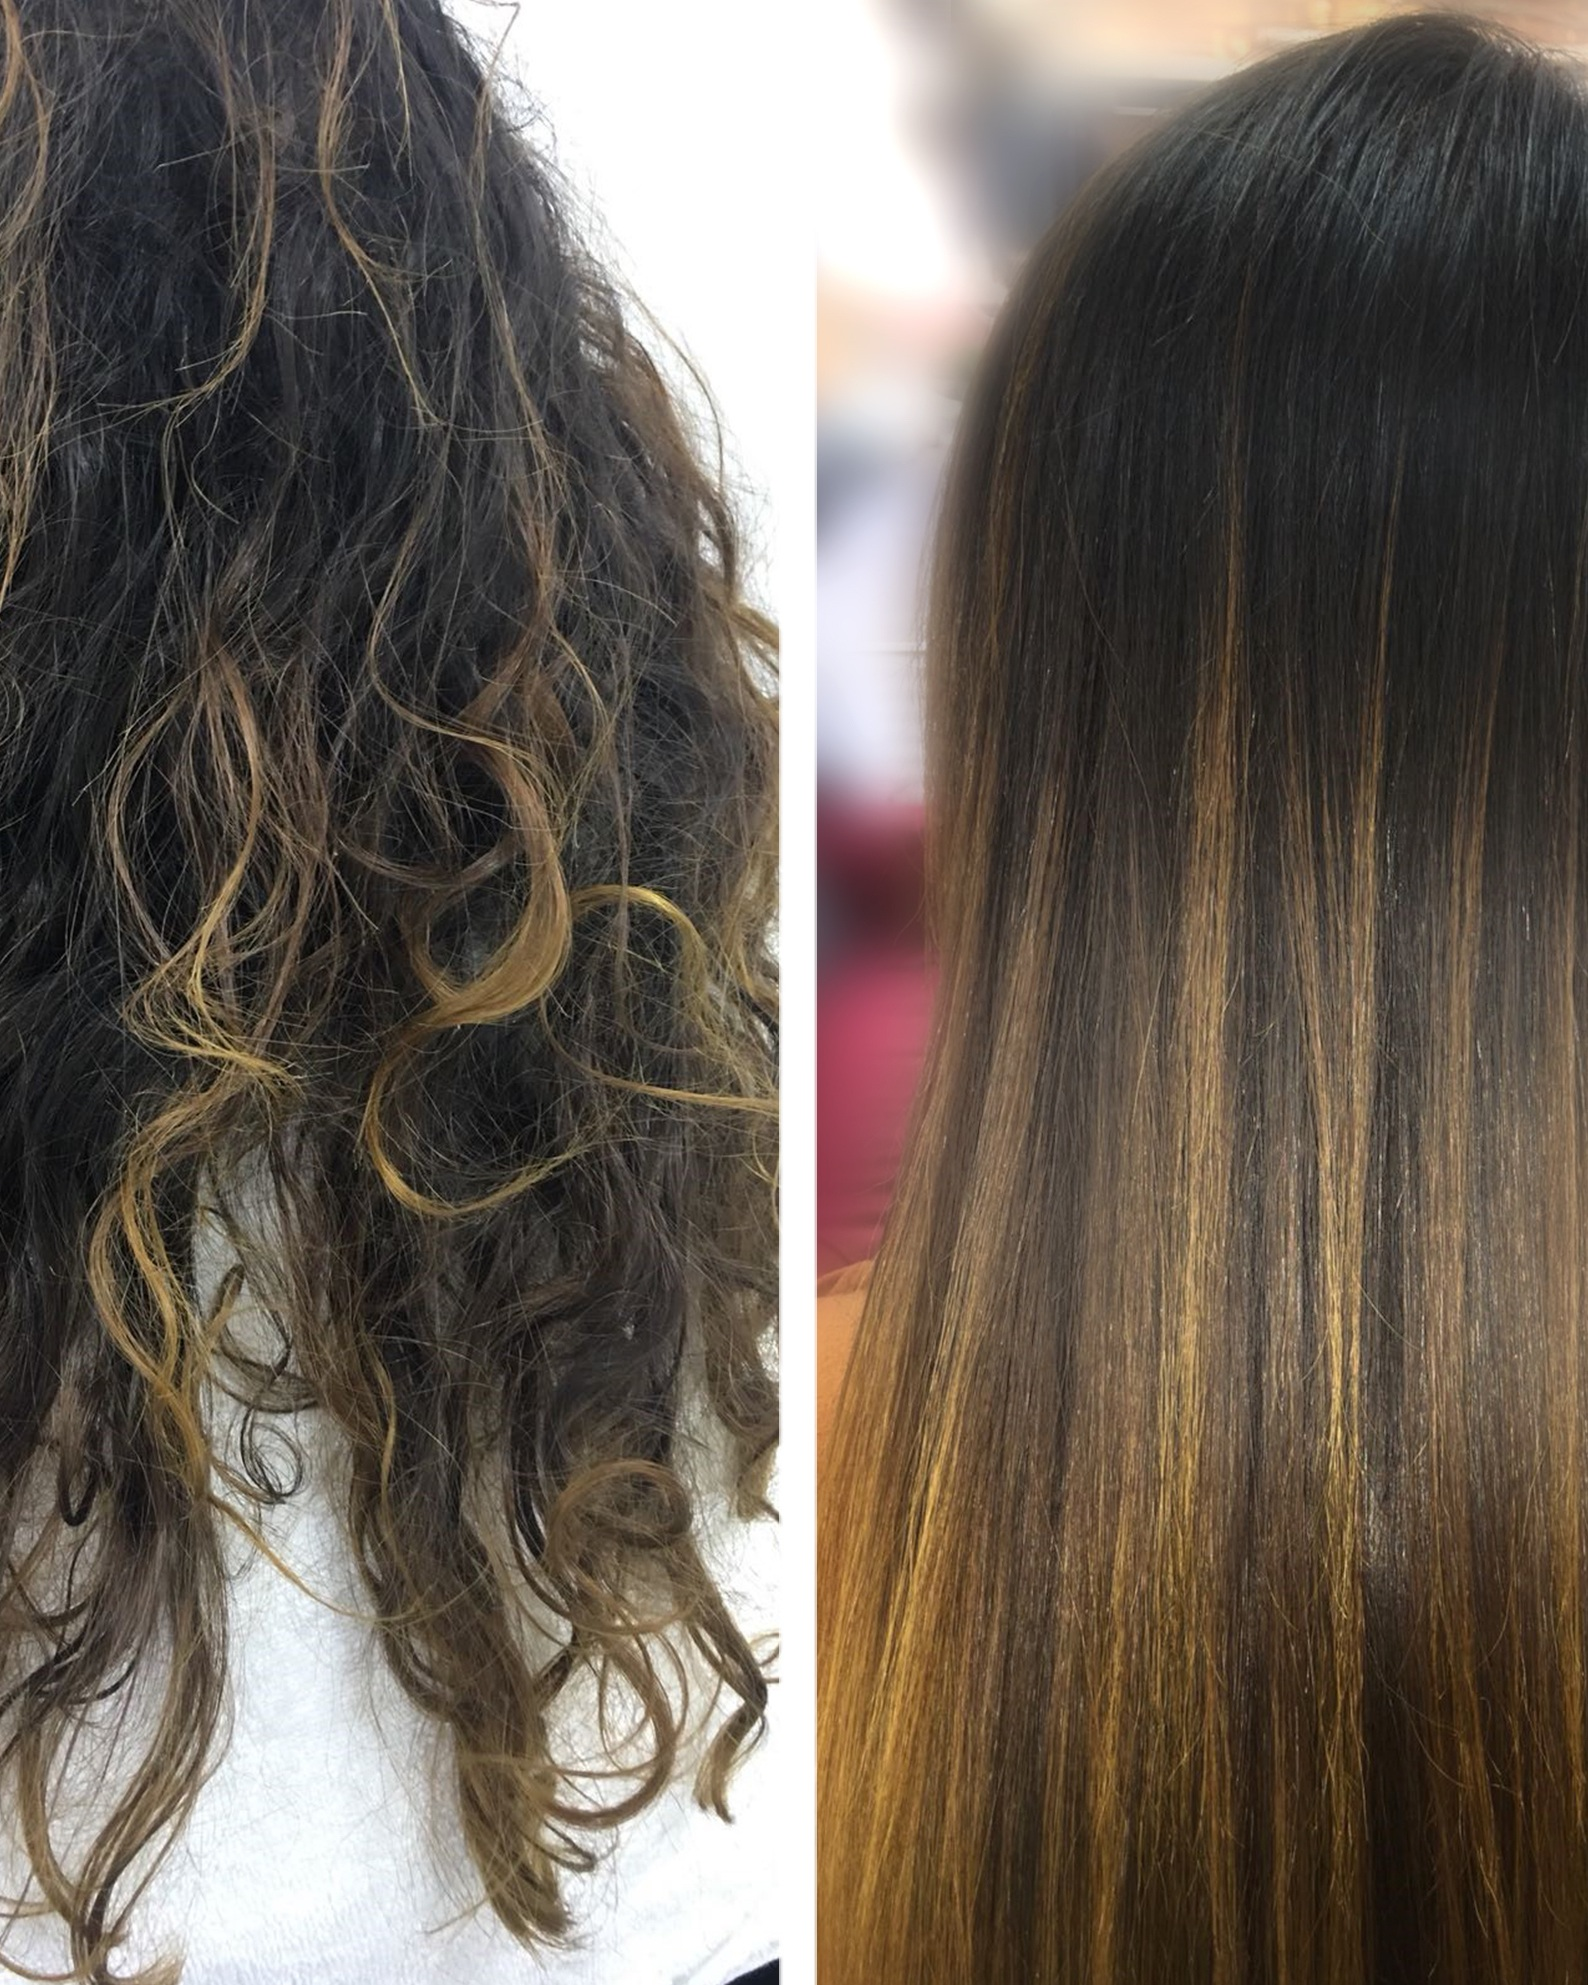 12 weeks of Frizz Free hair? - Toned, elastic, smooth, soft, detangled, humidity-proof, frizz controlled and manageable hair